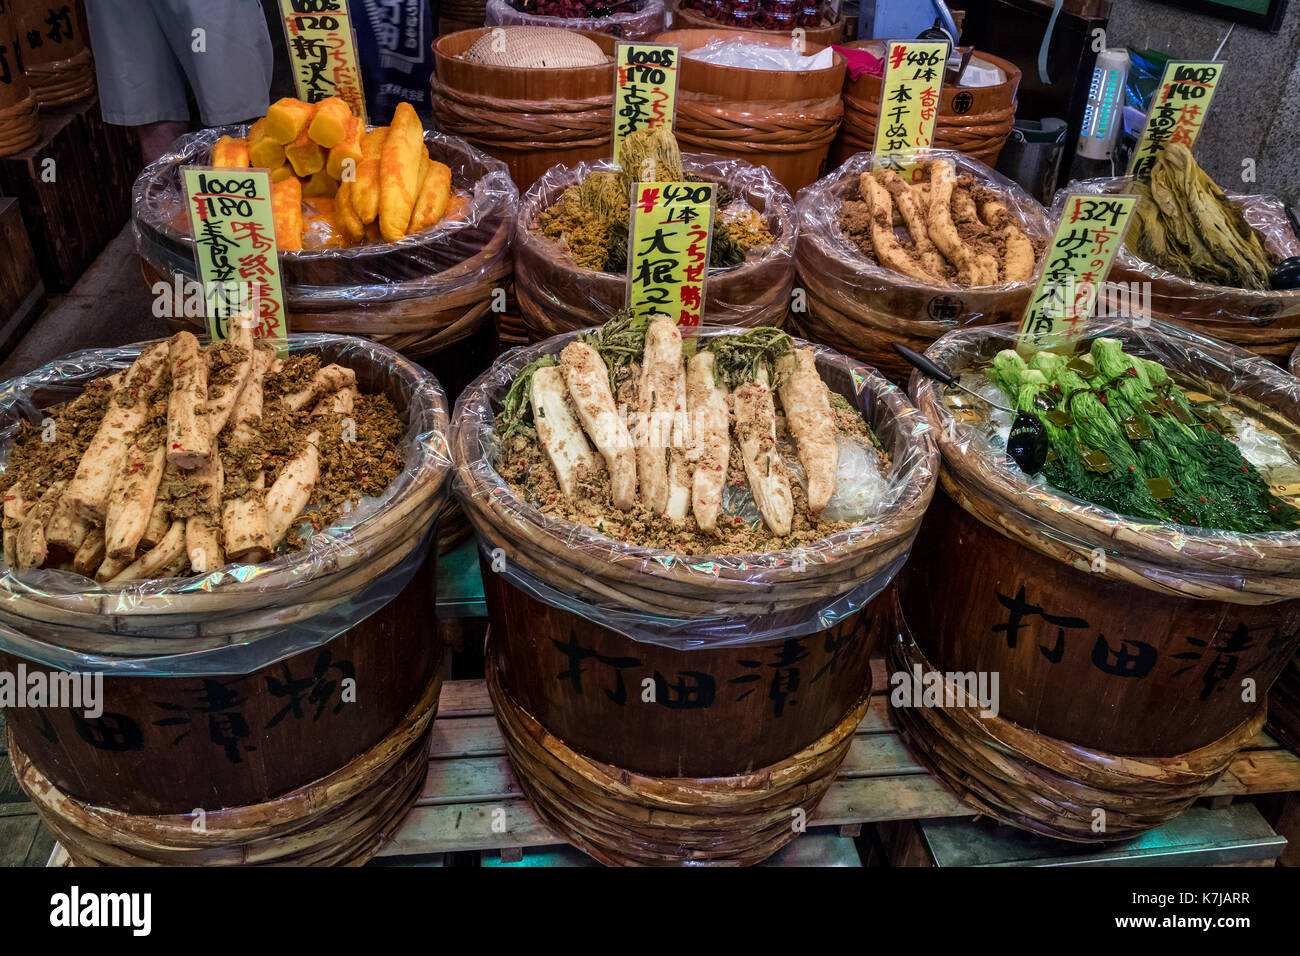 Kyoto, Japan -  May 17, 2017:Preserved vegetables, tsukemono, in wooden barrels for sale on the Nishiki market - Stock Image